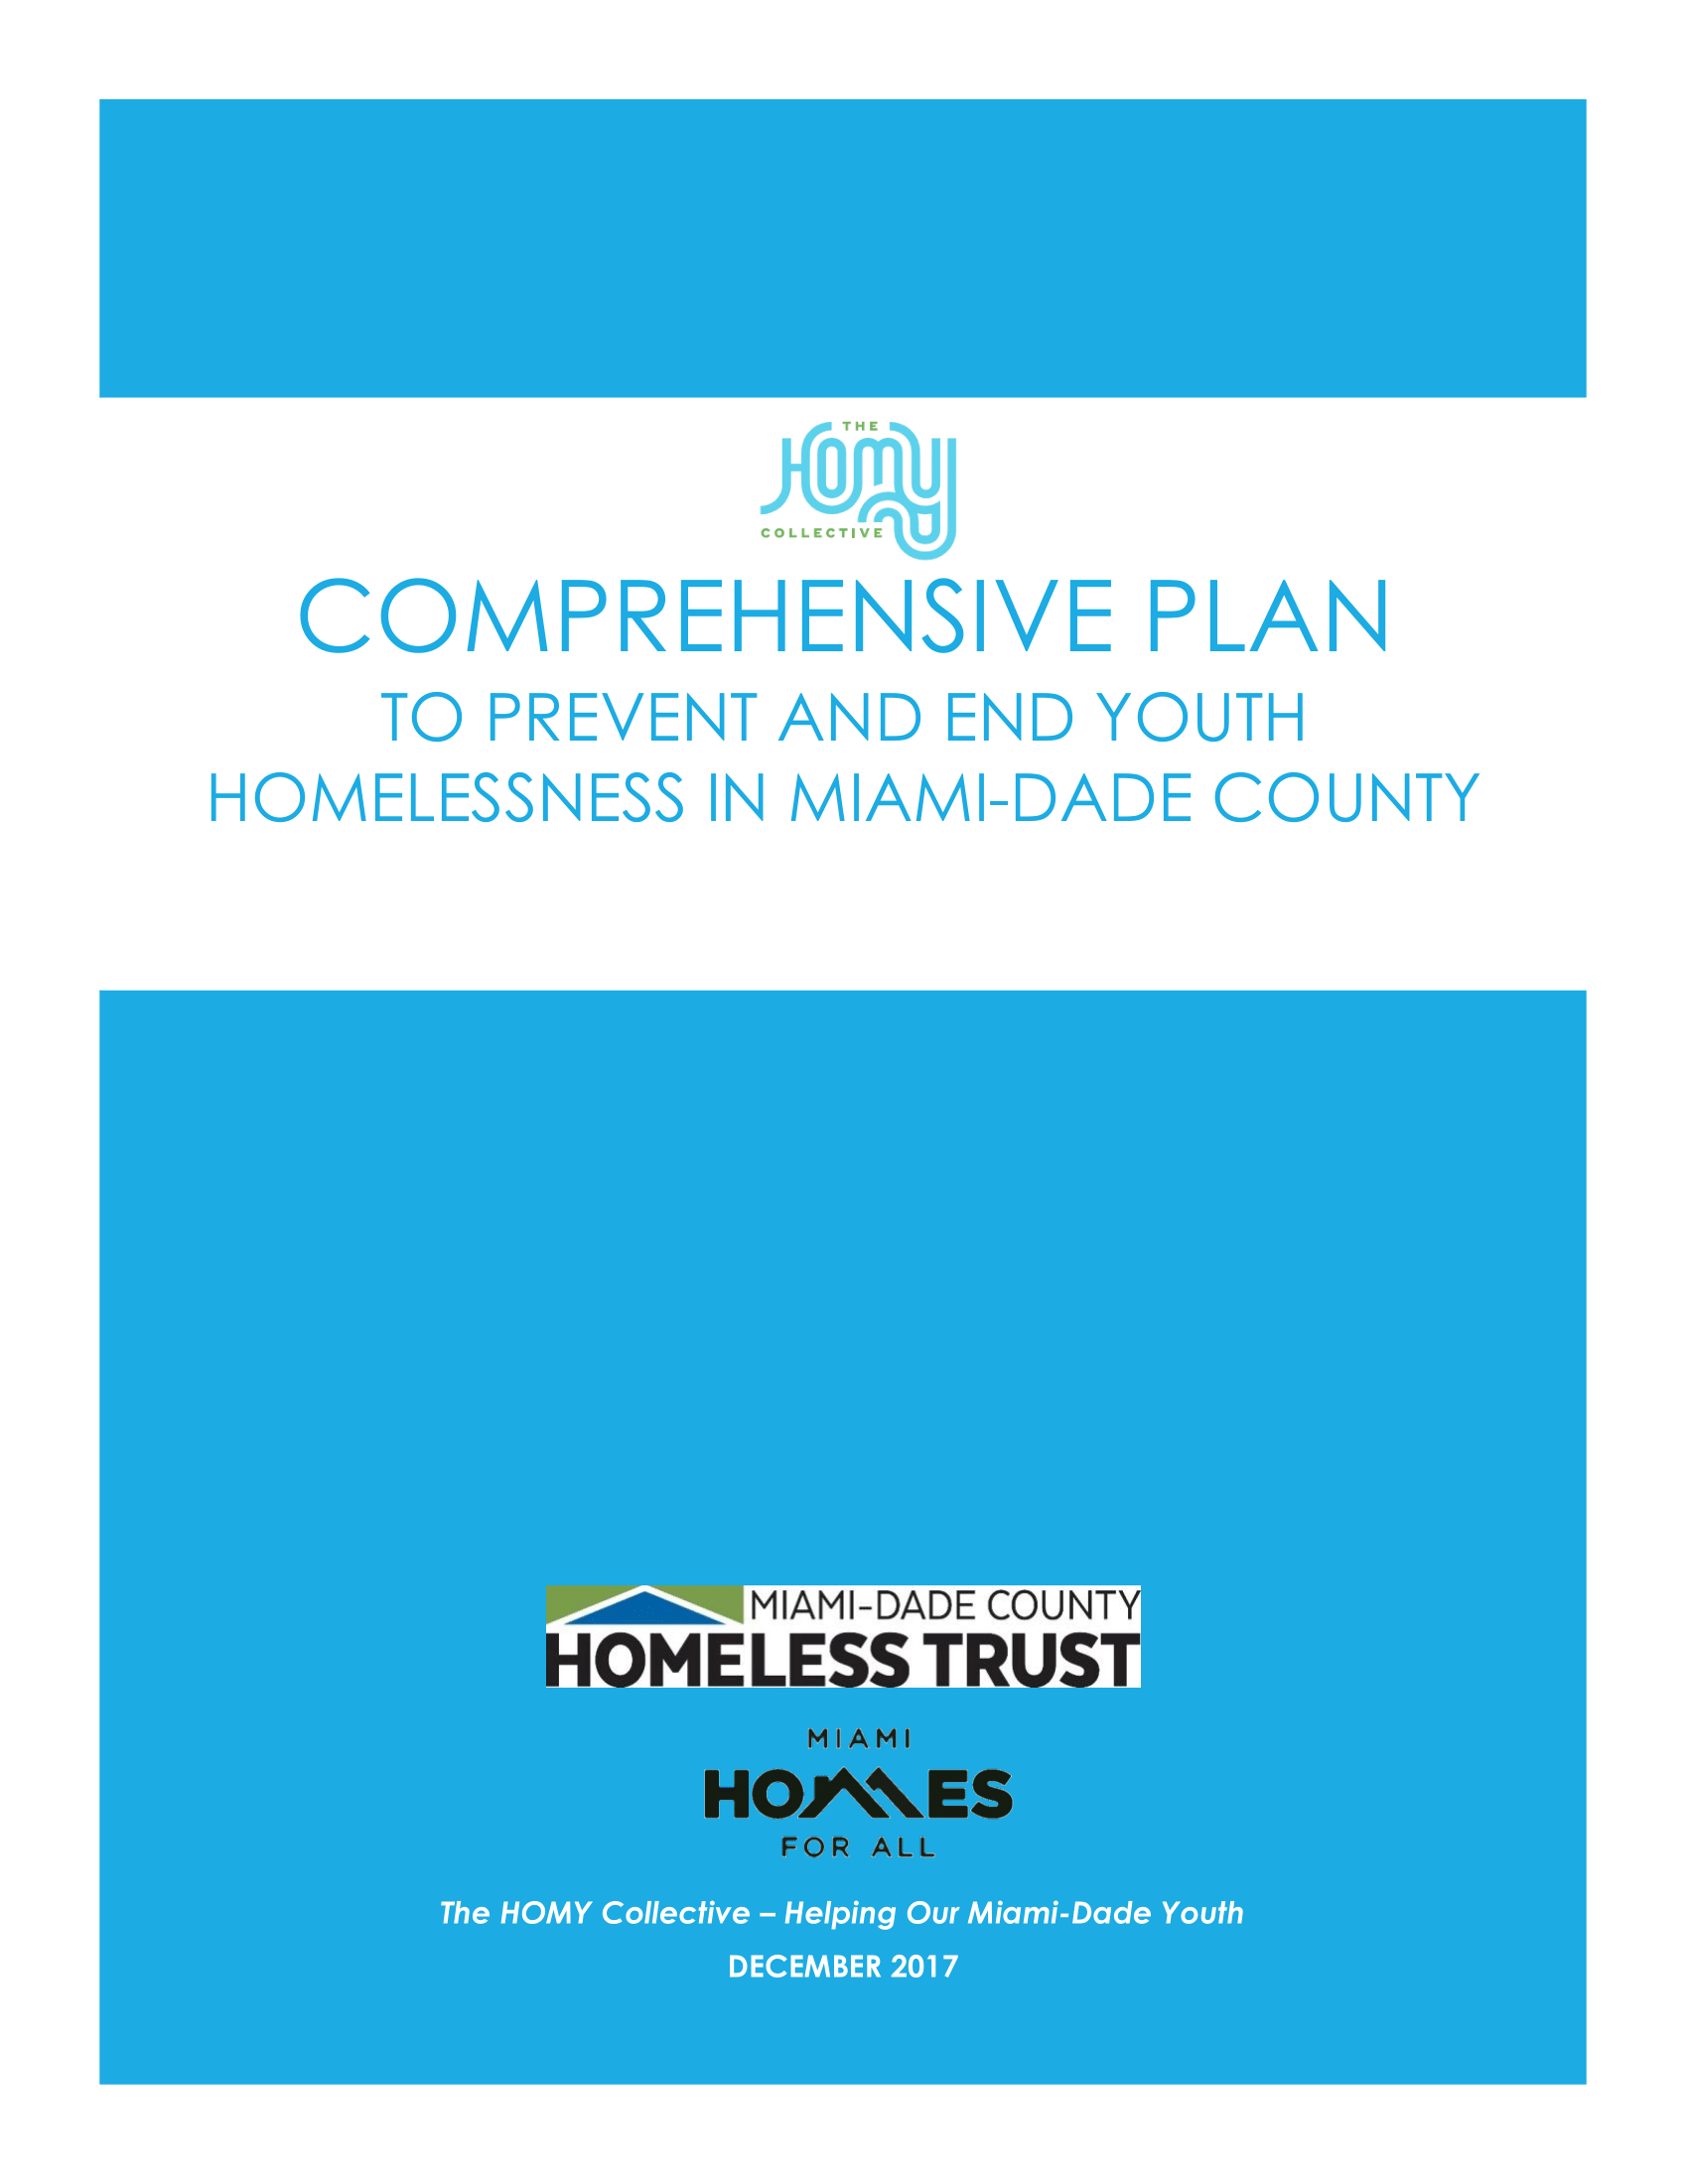 Comprehensive Plan to End and Prevent Homelessness in Miami-Dade County - December 2017-01.png